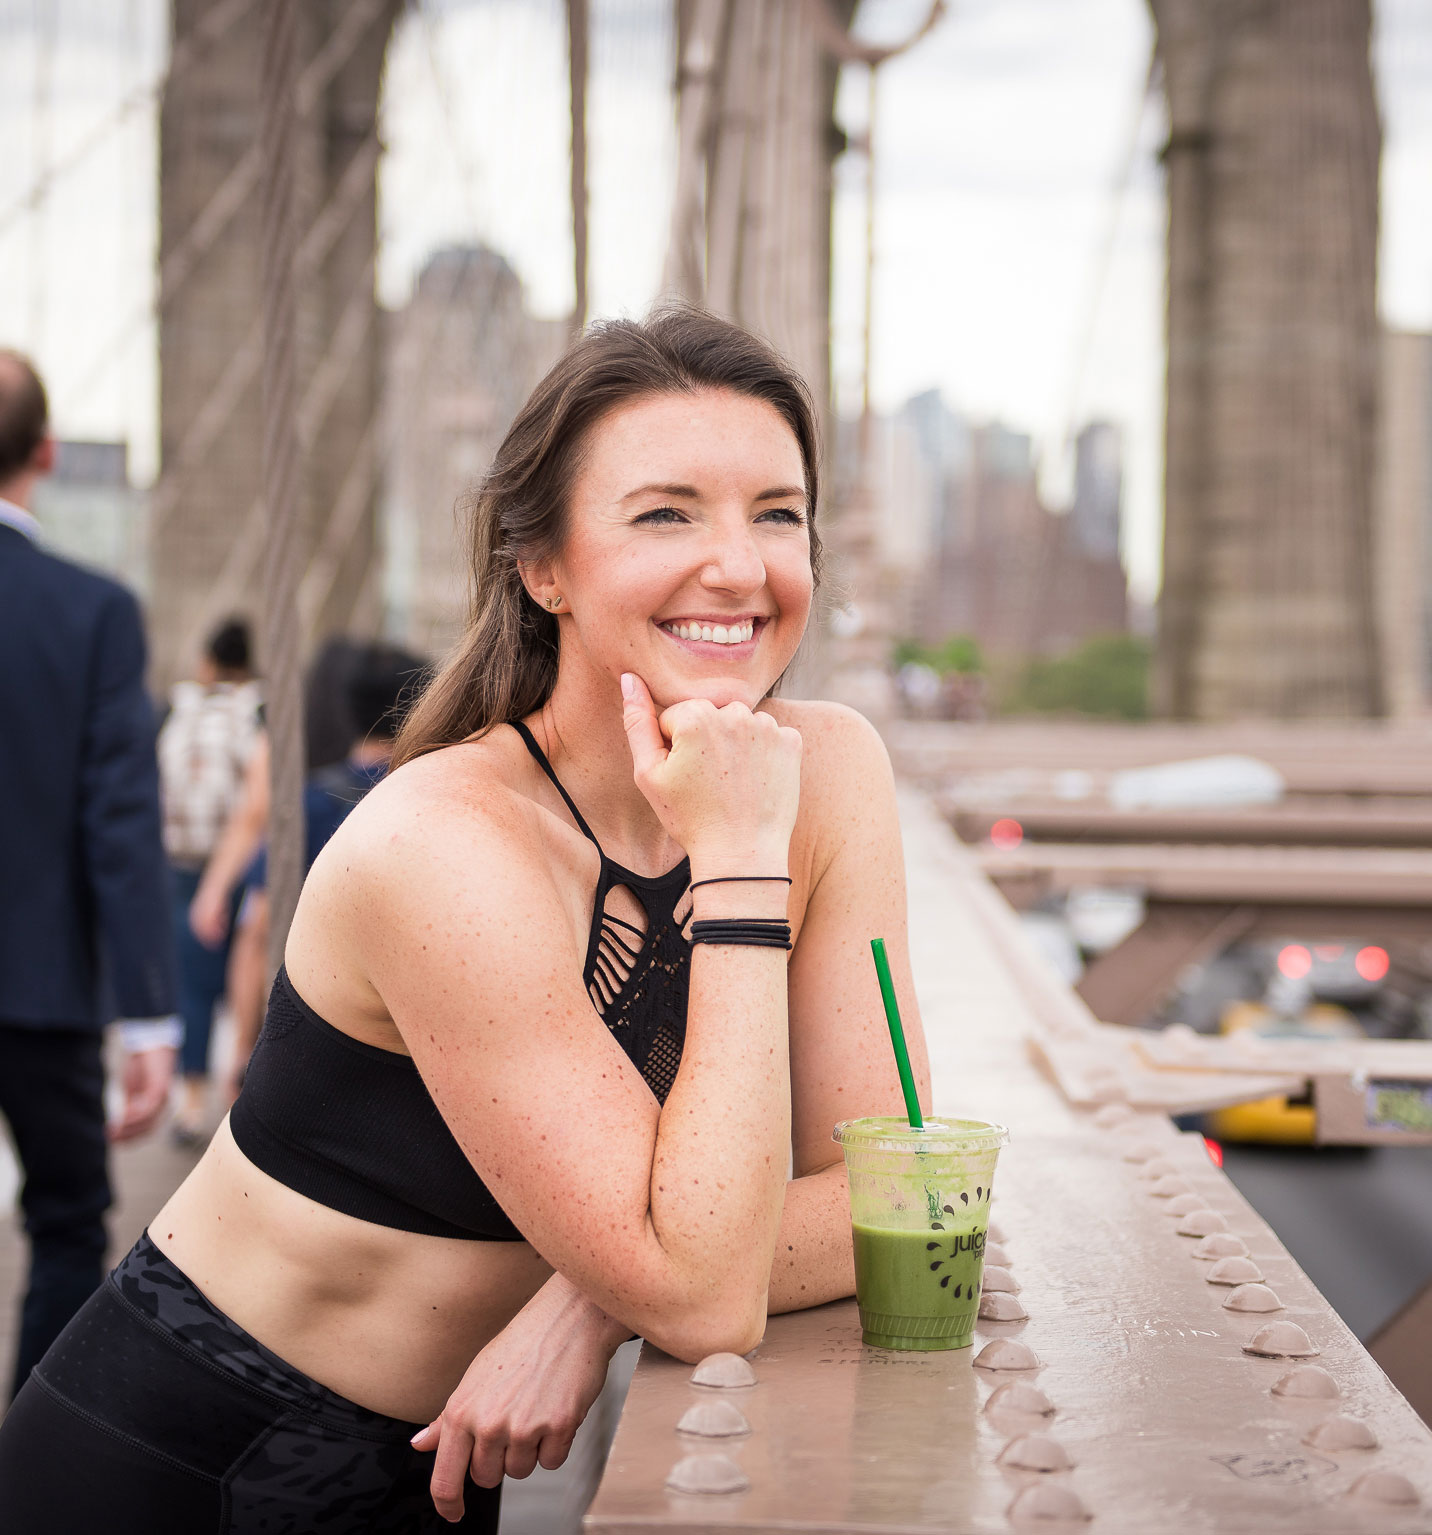 6 Tips for Your Healthiest Fittest Year Yet